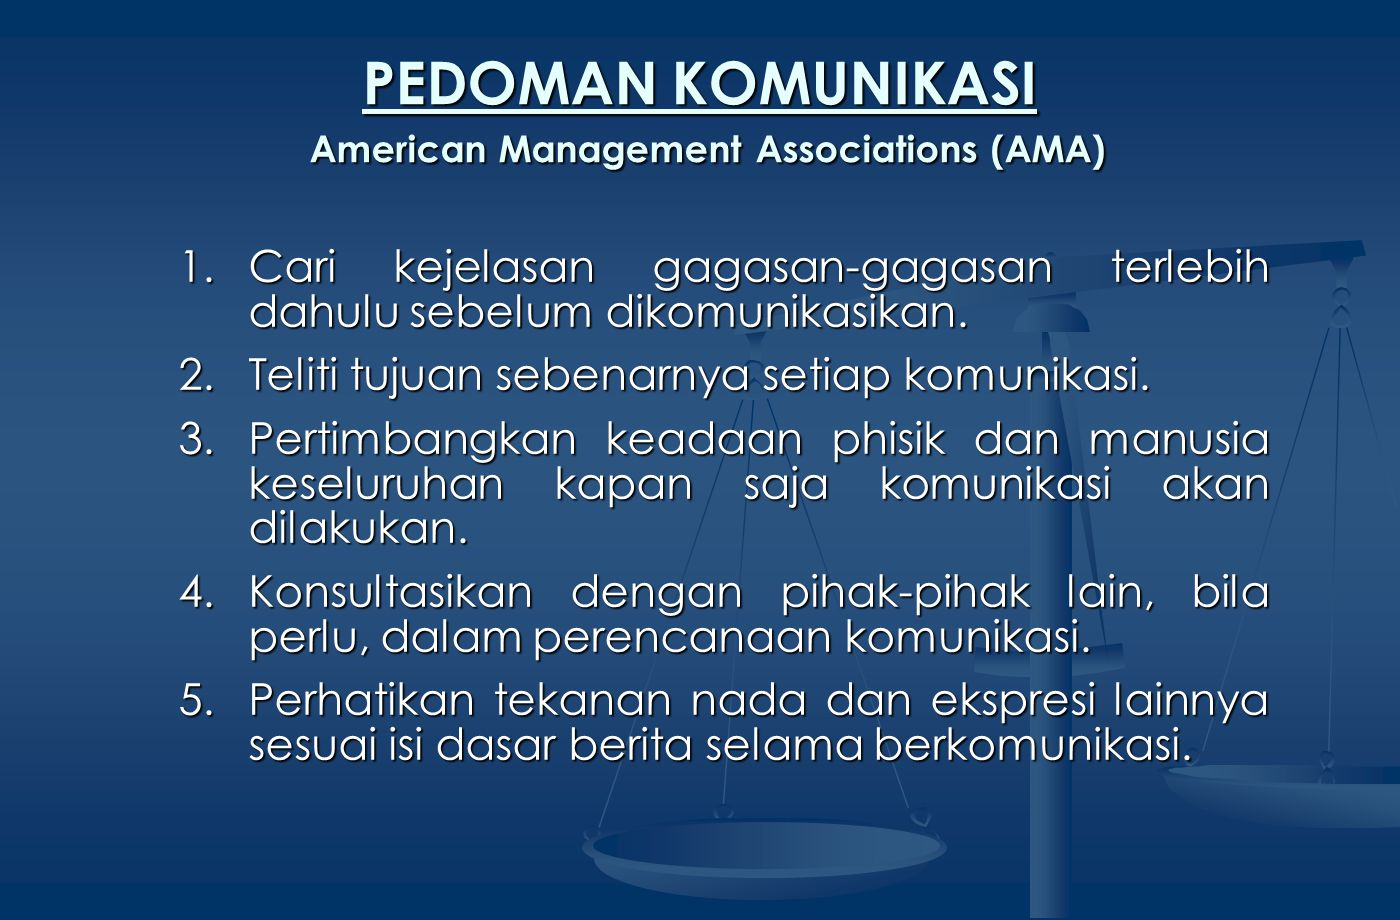 PEDOMAN KOMUNIKASI American Management Associations (AMA)